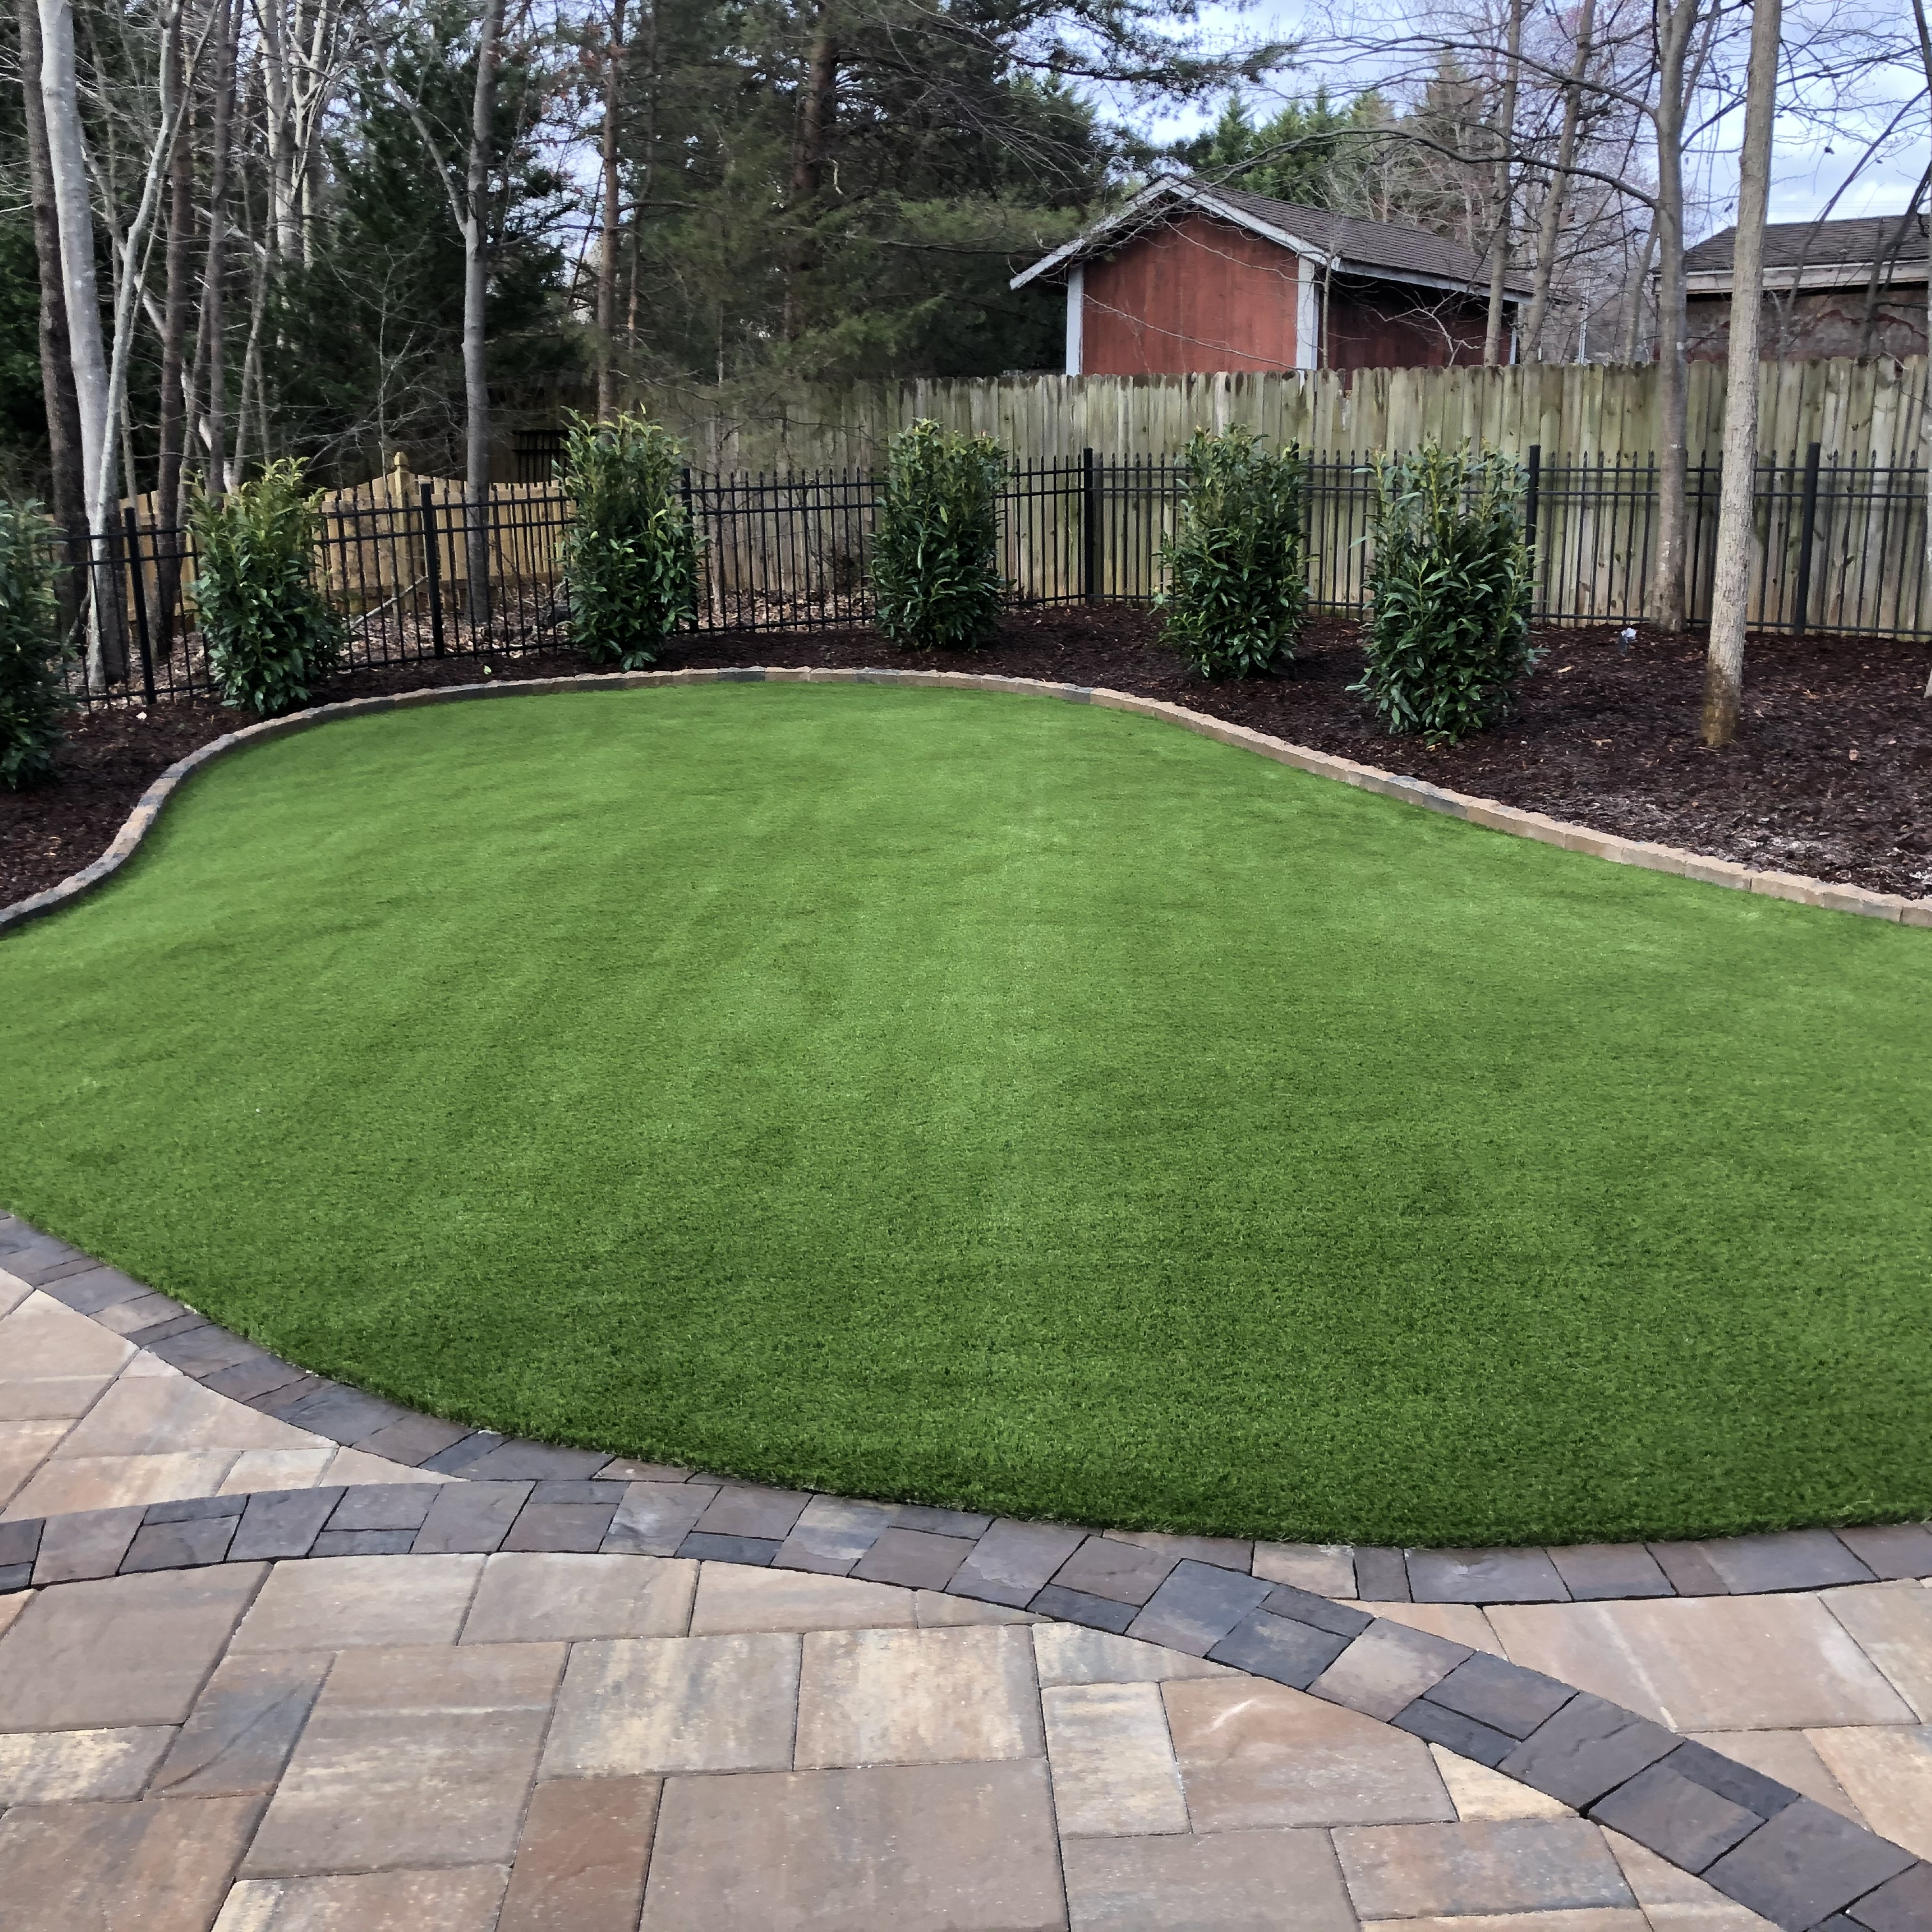 Super Natural 60 most realistic artificial grass,realistic artificial grass,most realistic artificial grass,artificial lawn,synthetic lawn,fake lawn,turf lawn,fake grass lawn